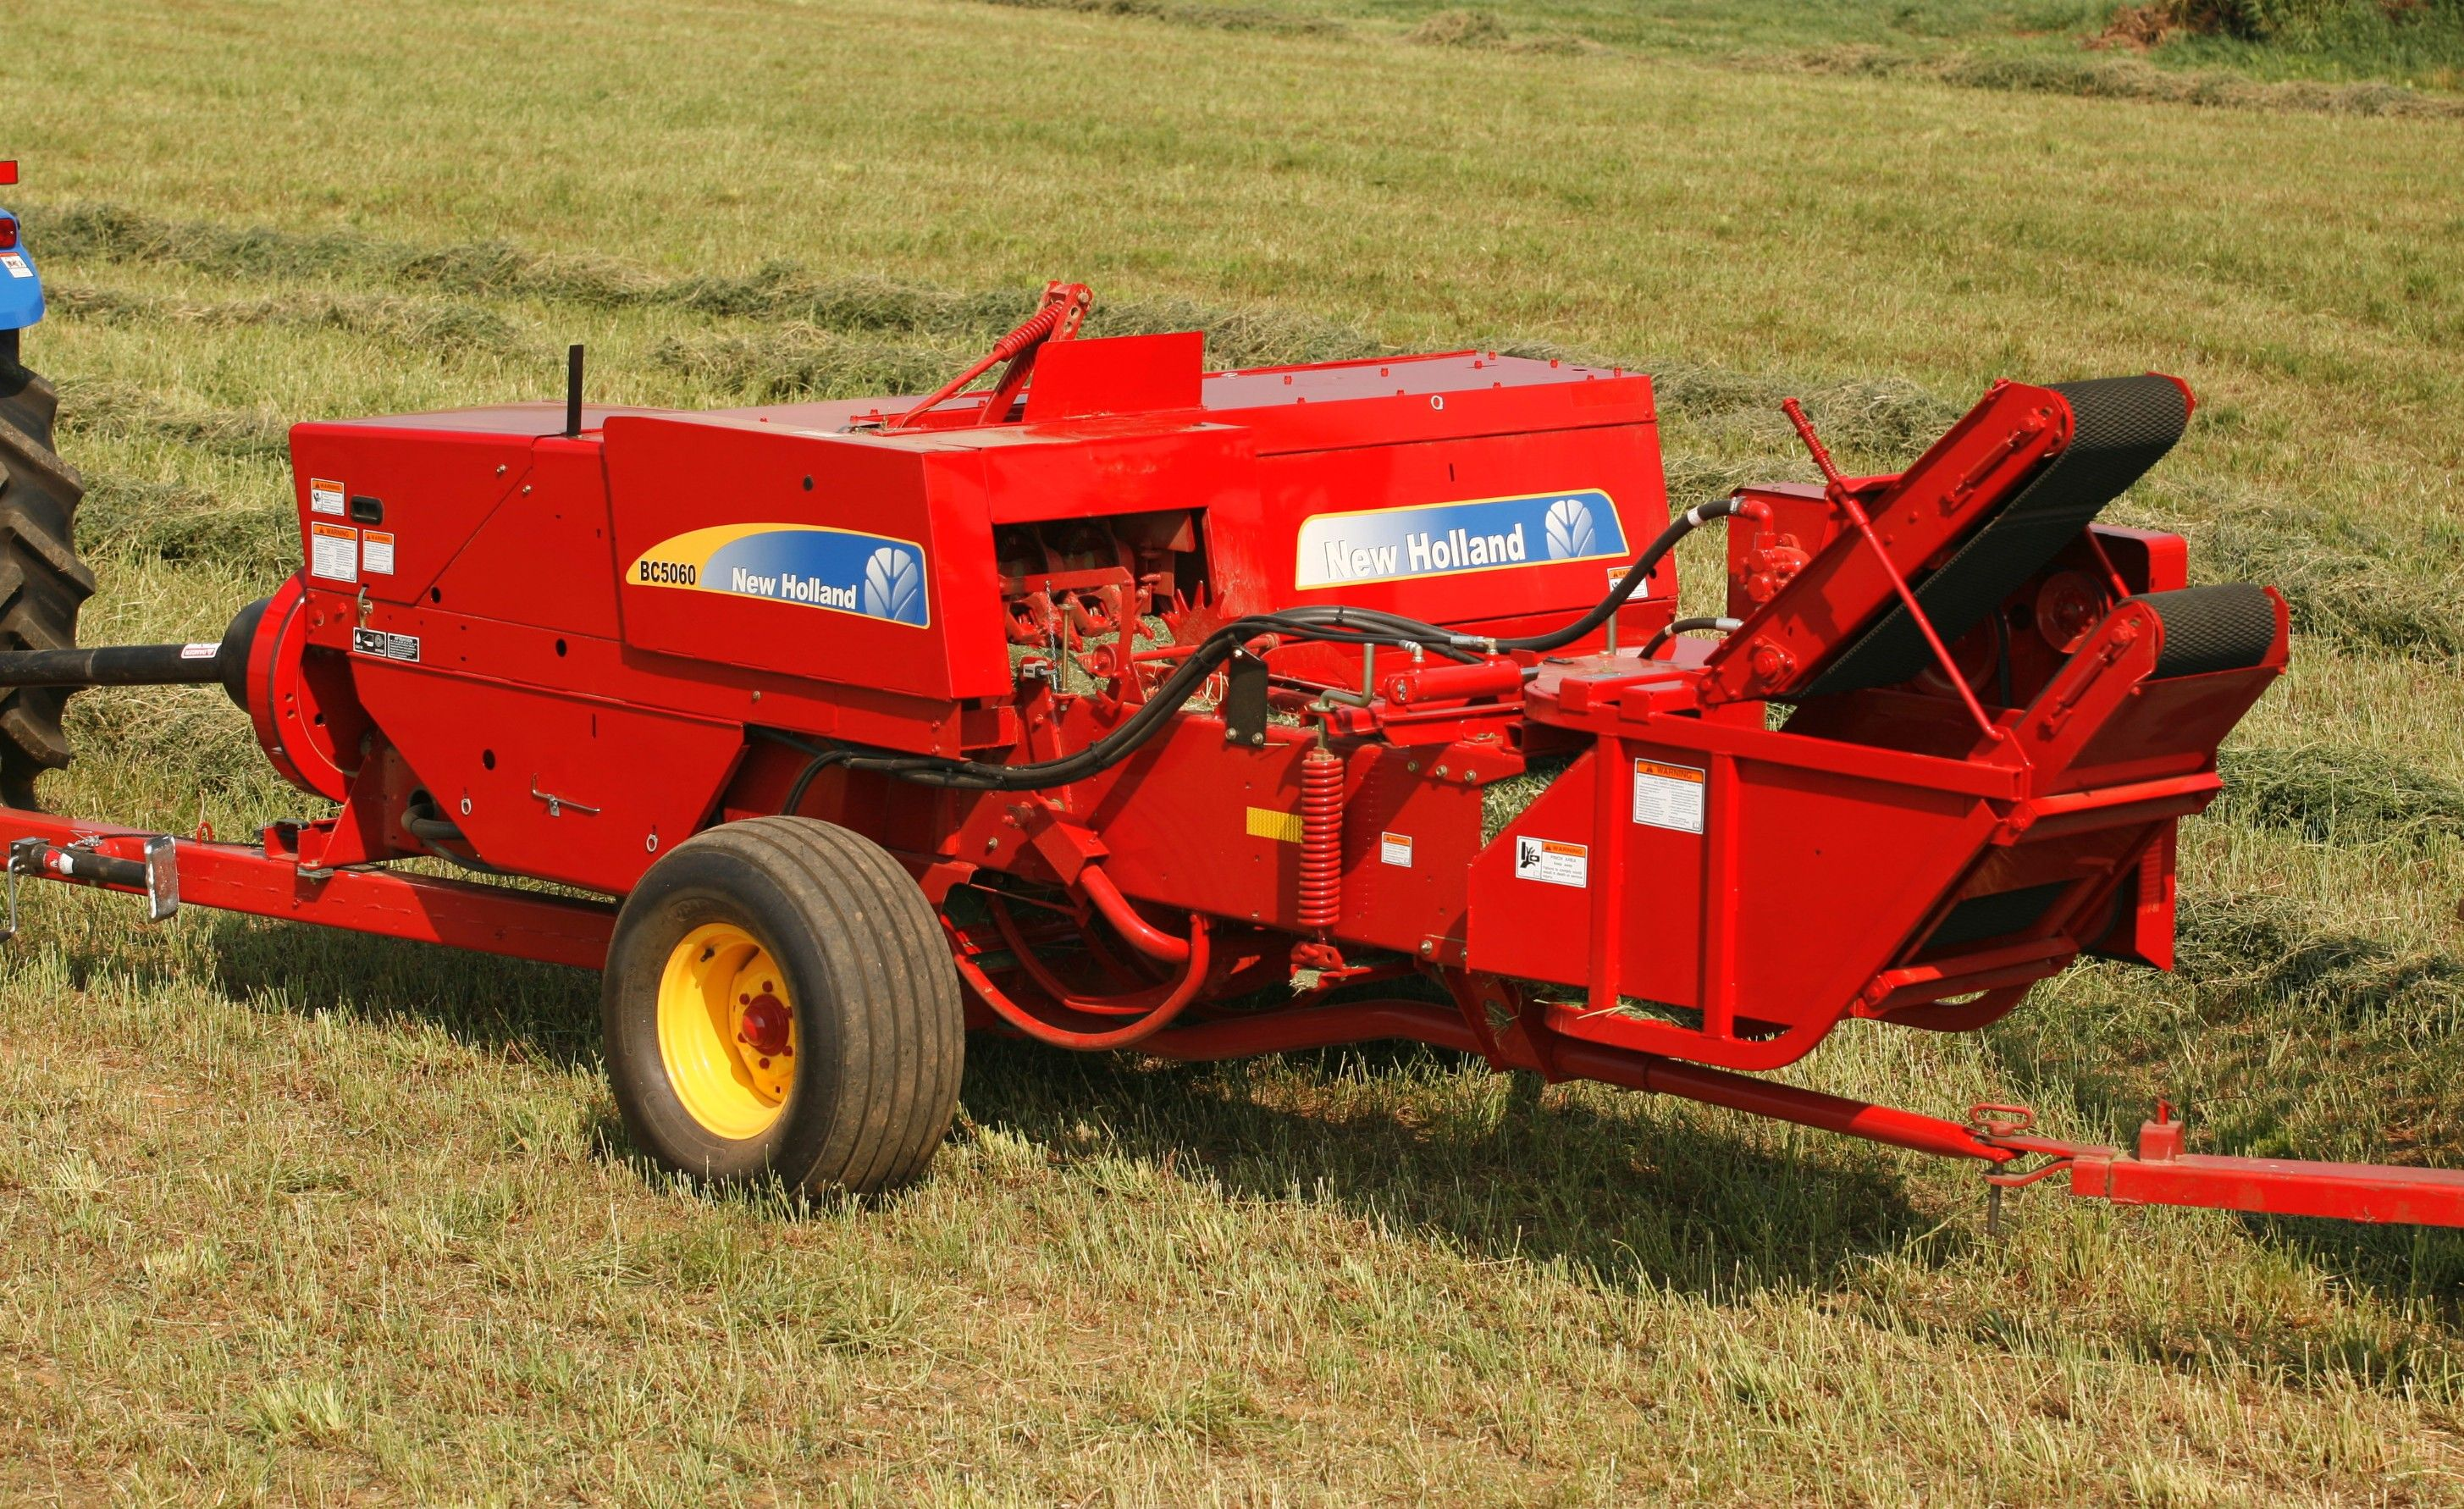 Nh Square Baler New Holland Agriculture Farm Machinery New